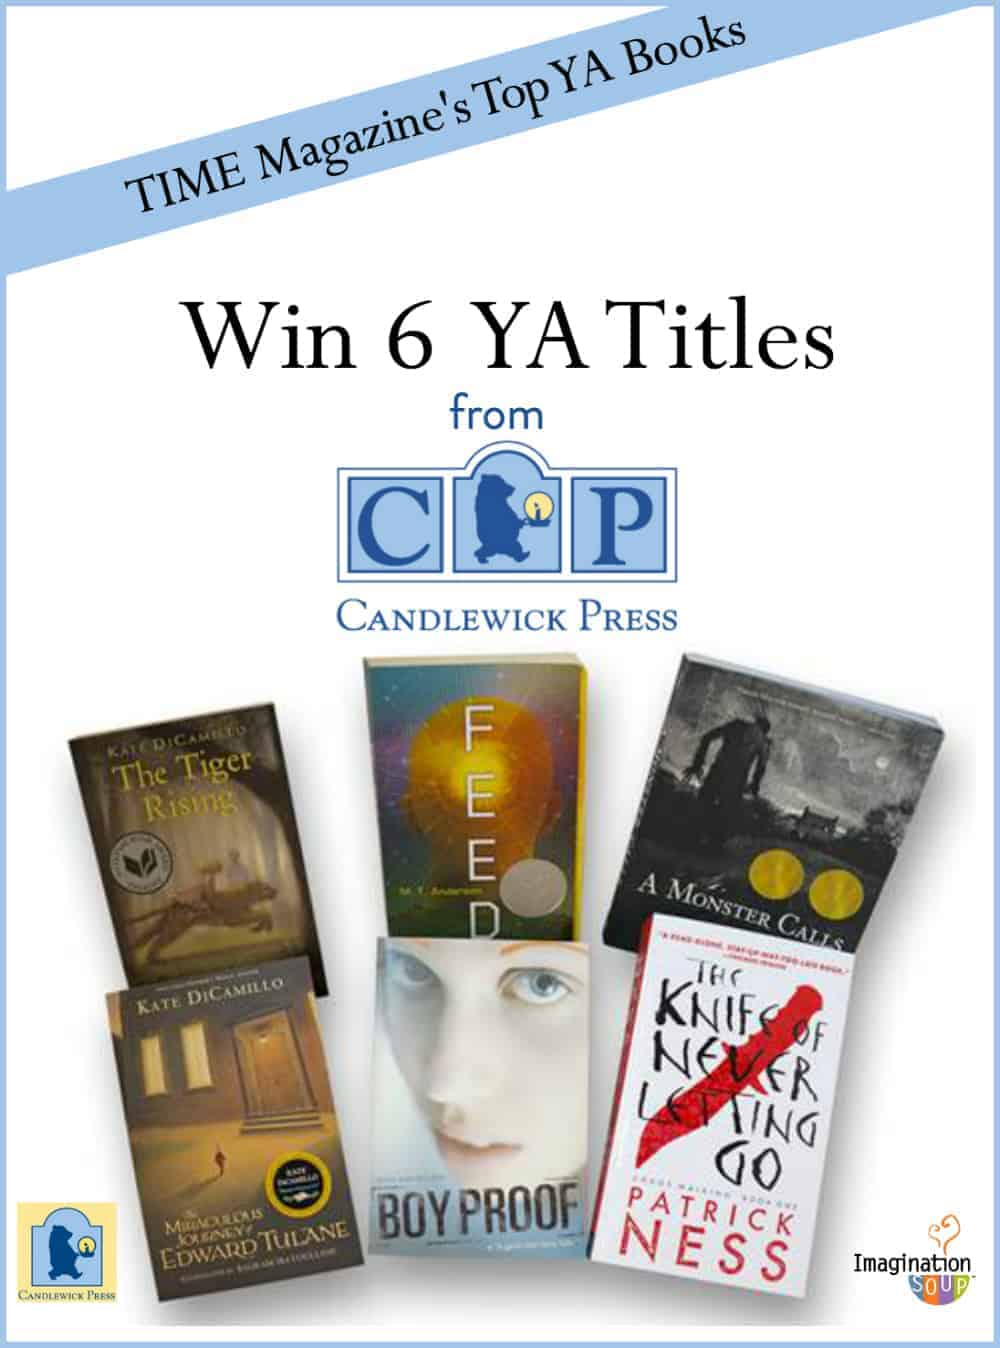 Candlewick has 6 YA books on the TIME magazine top 100 list - giveaway on Imagination Soup